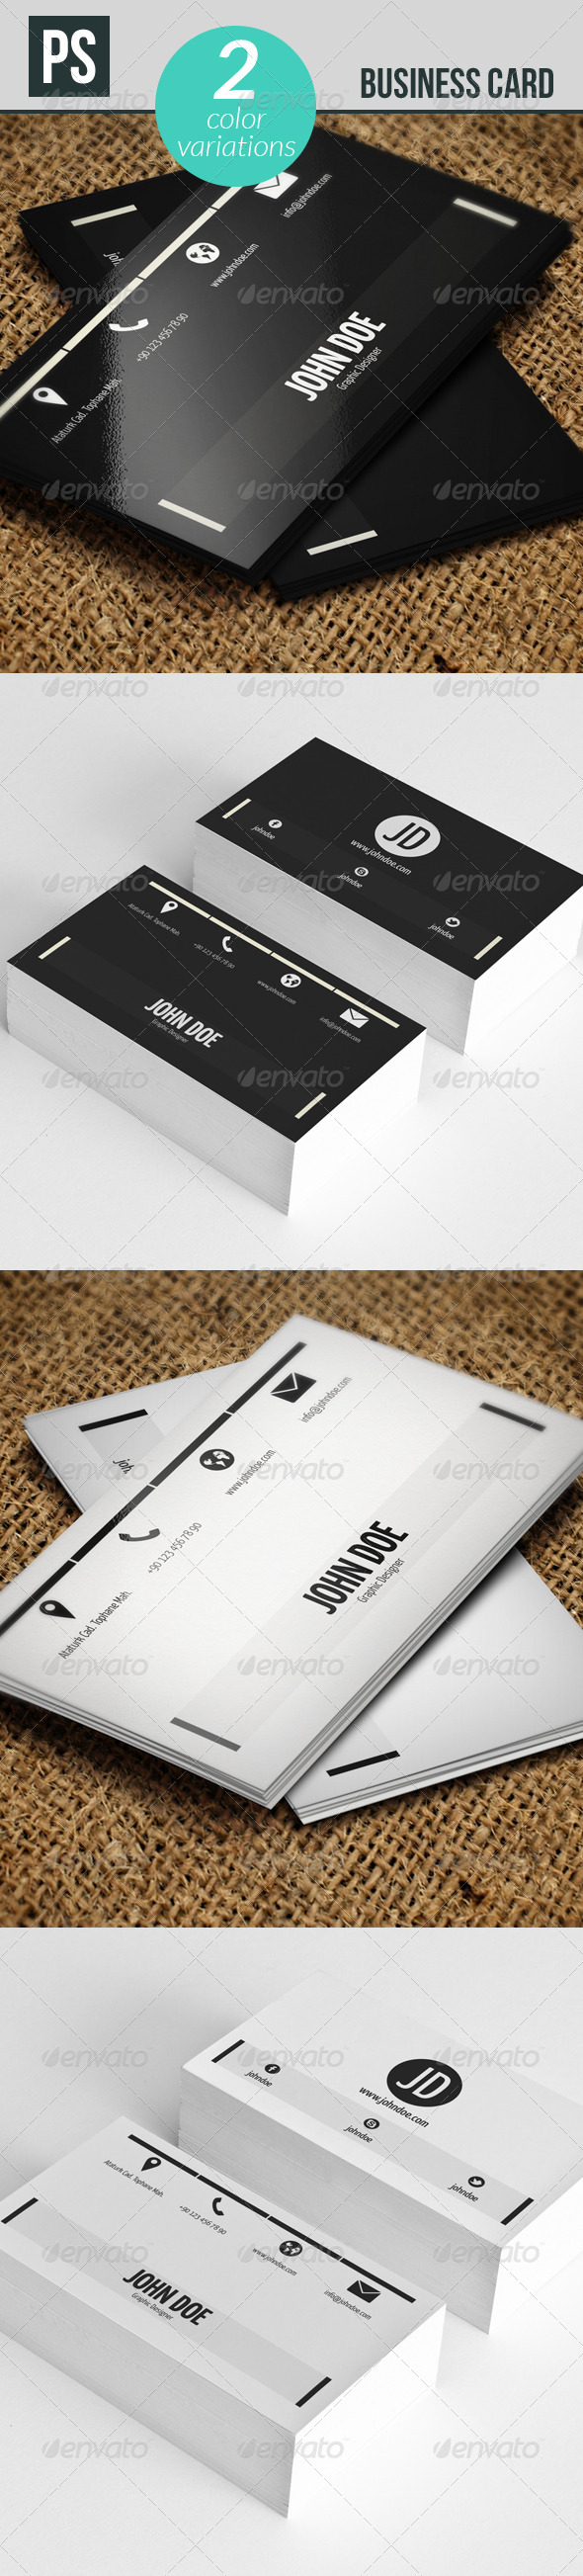 GraphicRiver Business Card 5290359